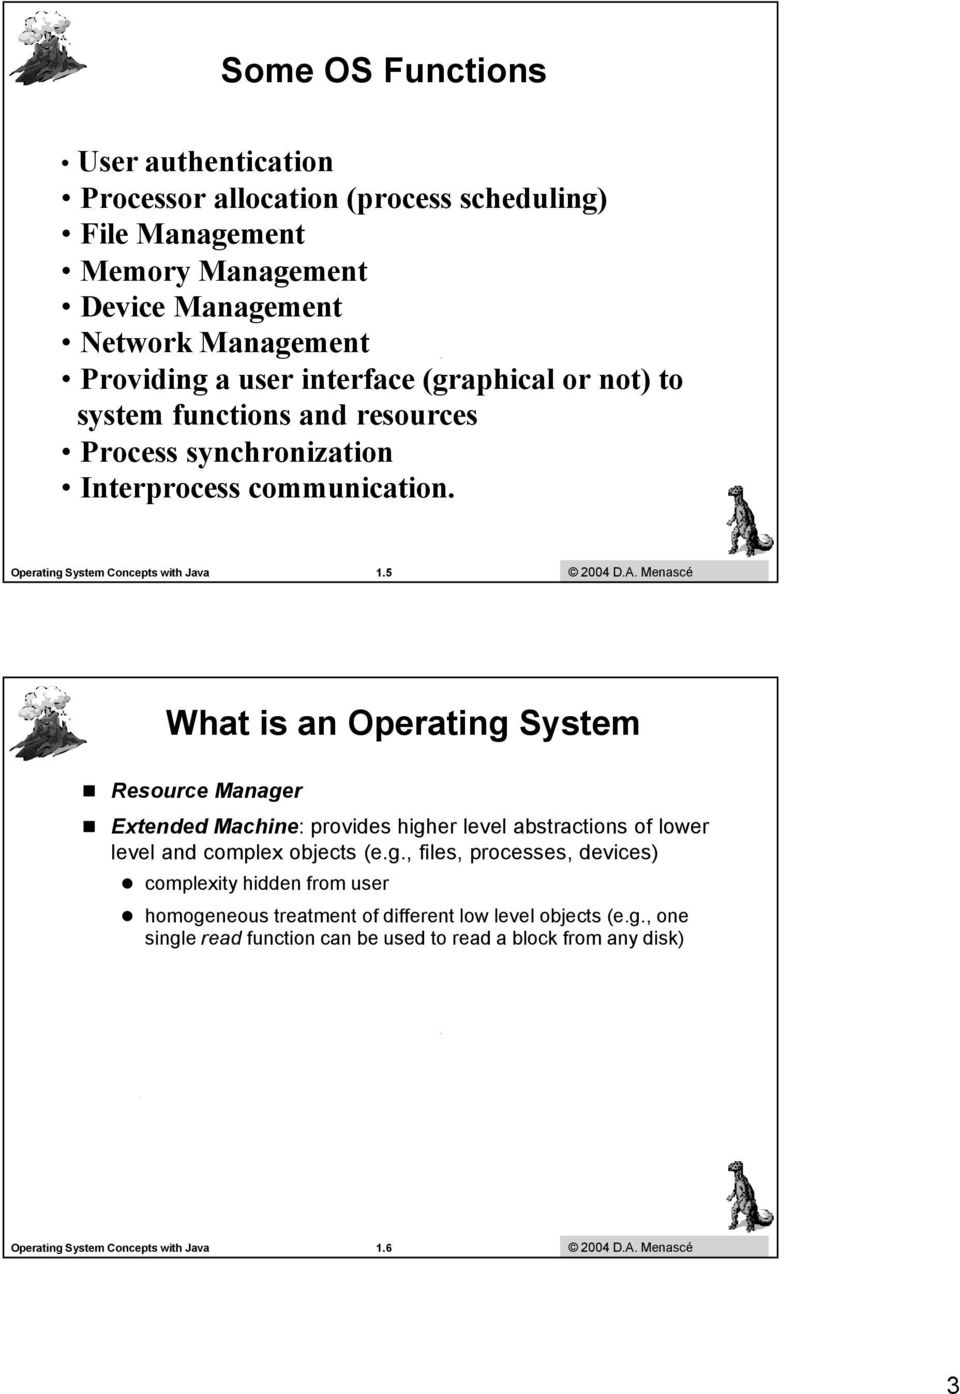 Galvin Menascé and Gagne 2003 What is an Operating System Resource Manager Extended Machine: provides higher level abstractions of lower level and complex objects (e.g., files, processes, devices) complexity hidden from user homogeneous treatment of different low level objects (e.